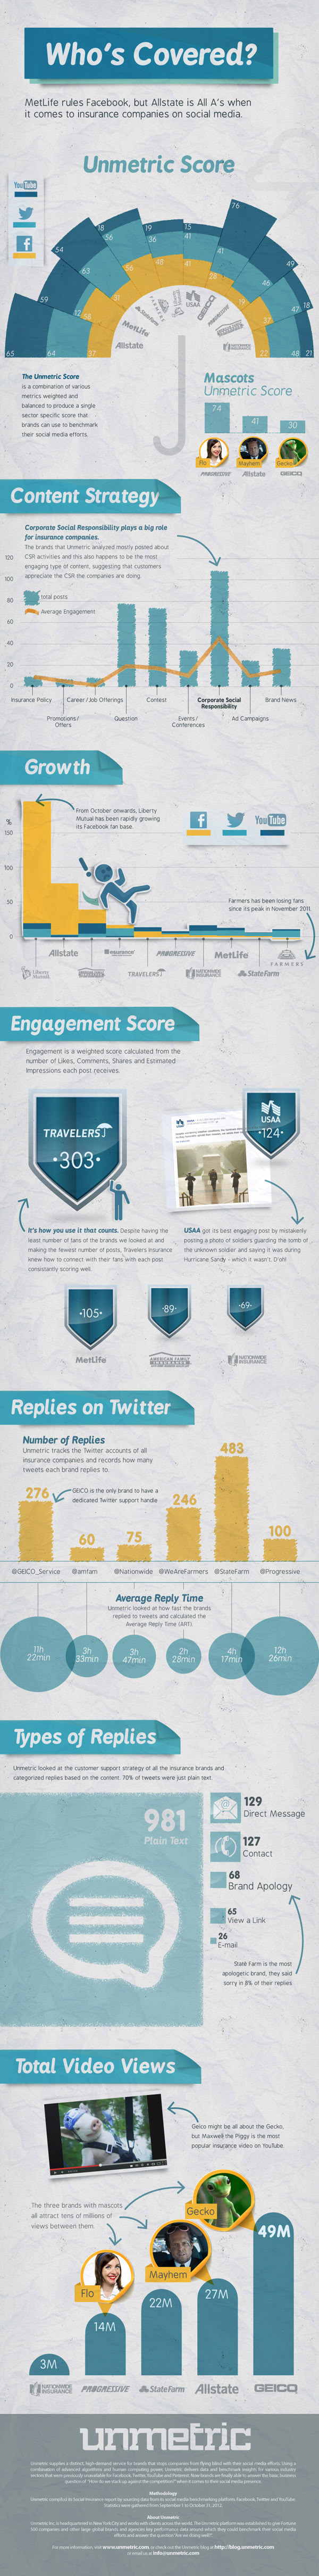 Top Insurance Companies on Social Media 44 Catchy Insurance Advertising Slogans and Taglines